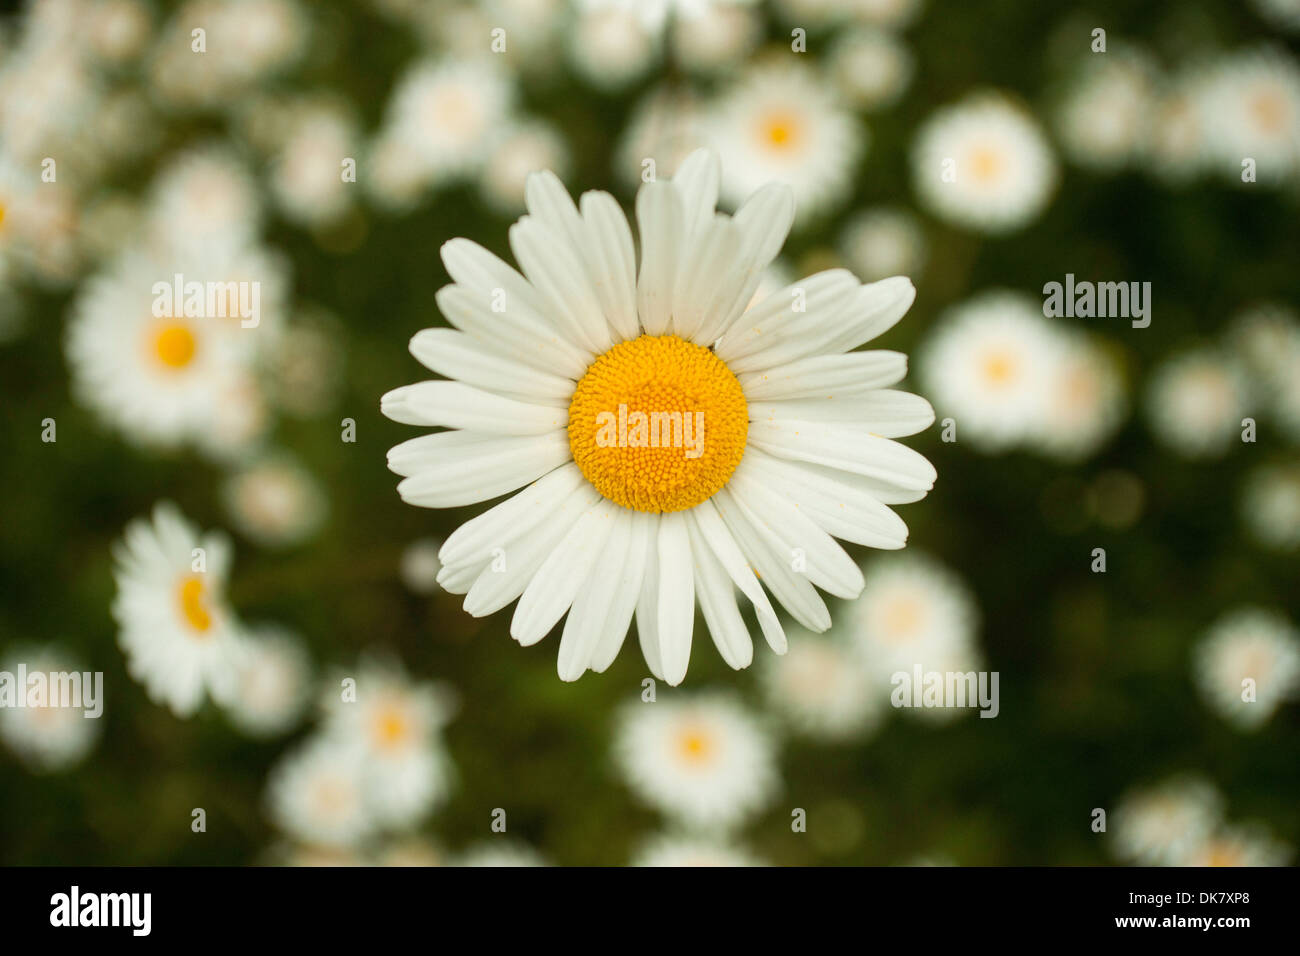 Daisy type flower white with yellow eye on a background of daisy type flower white with yellow eye on a background of similar flowers dhlflorist Images